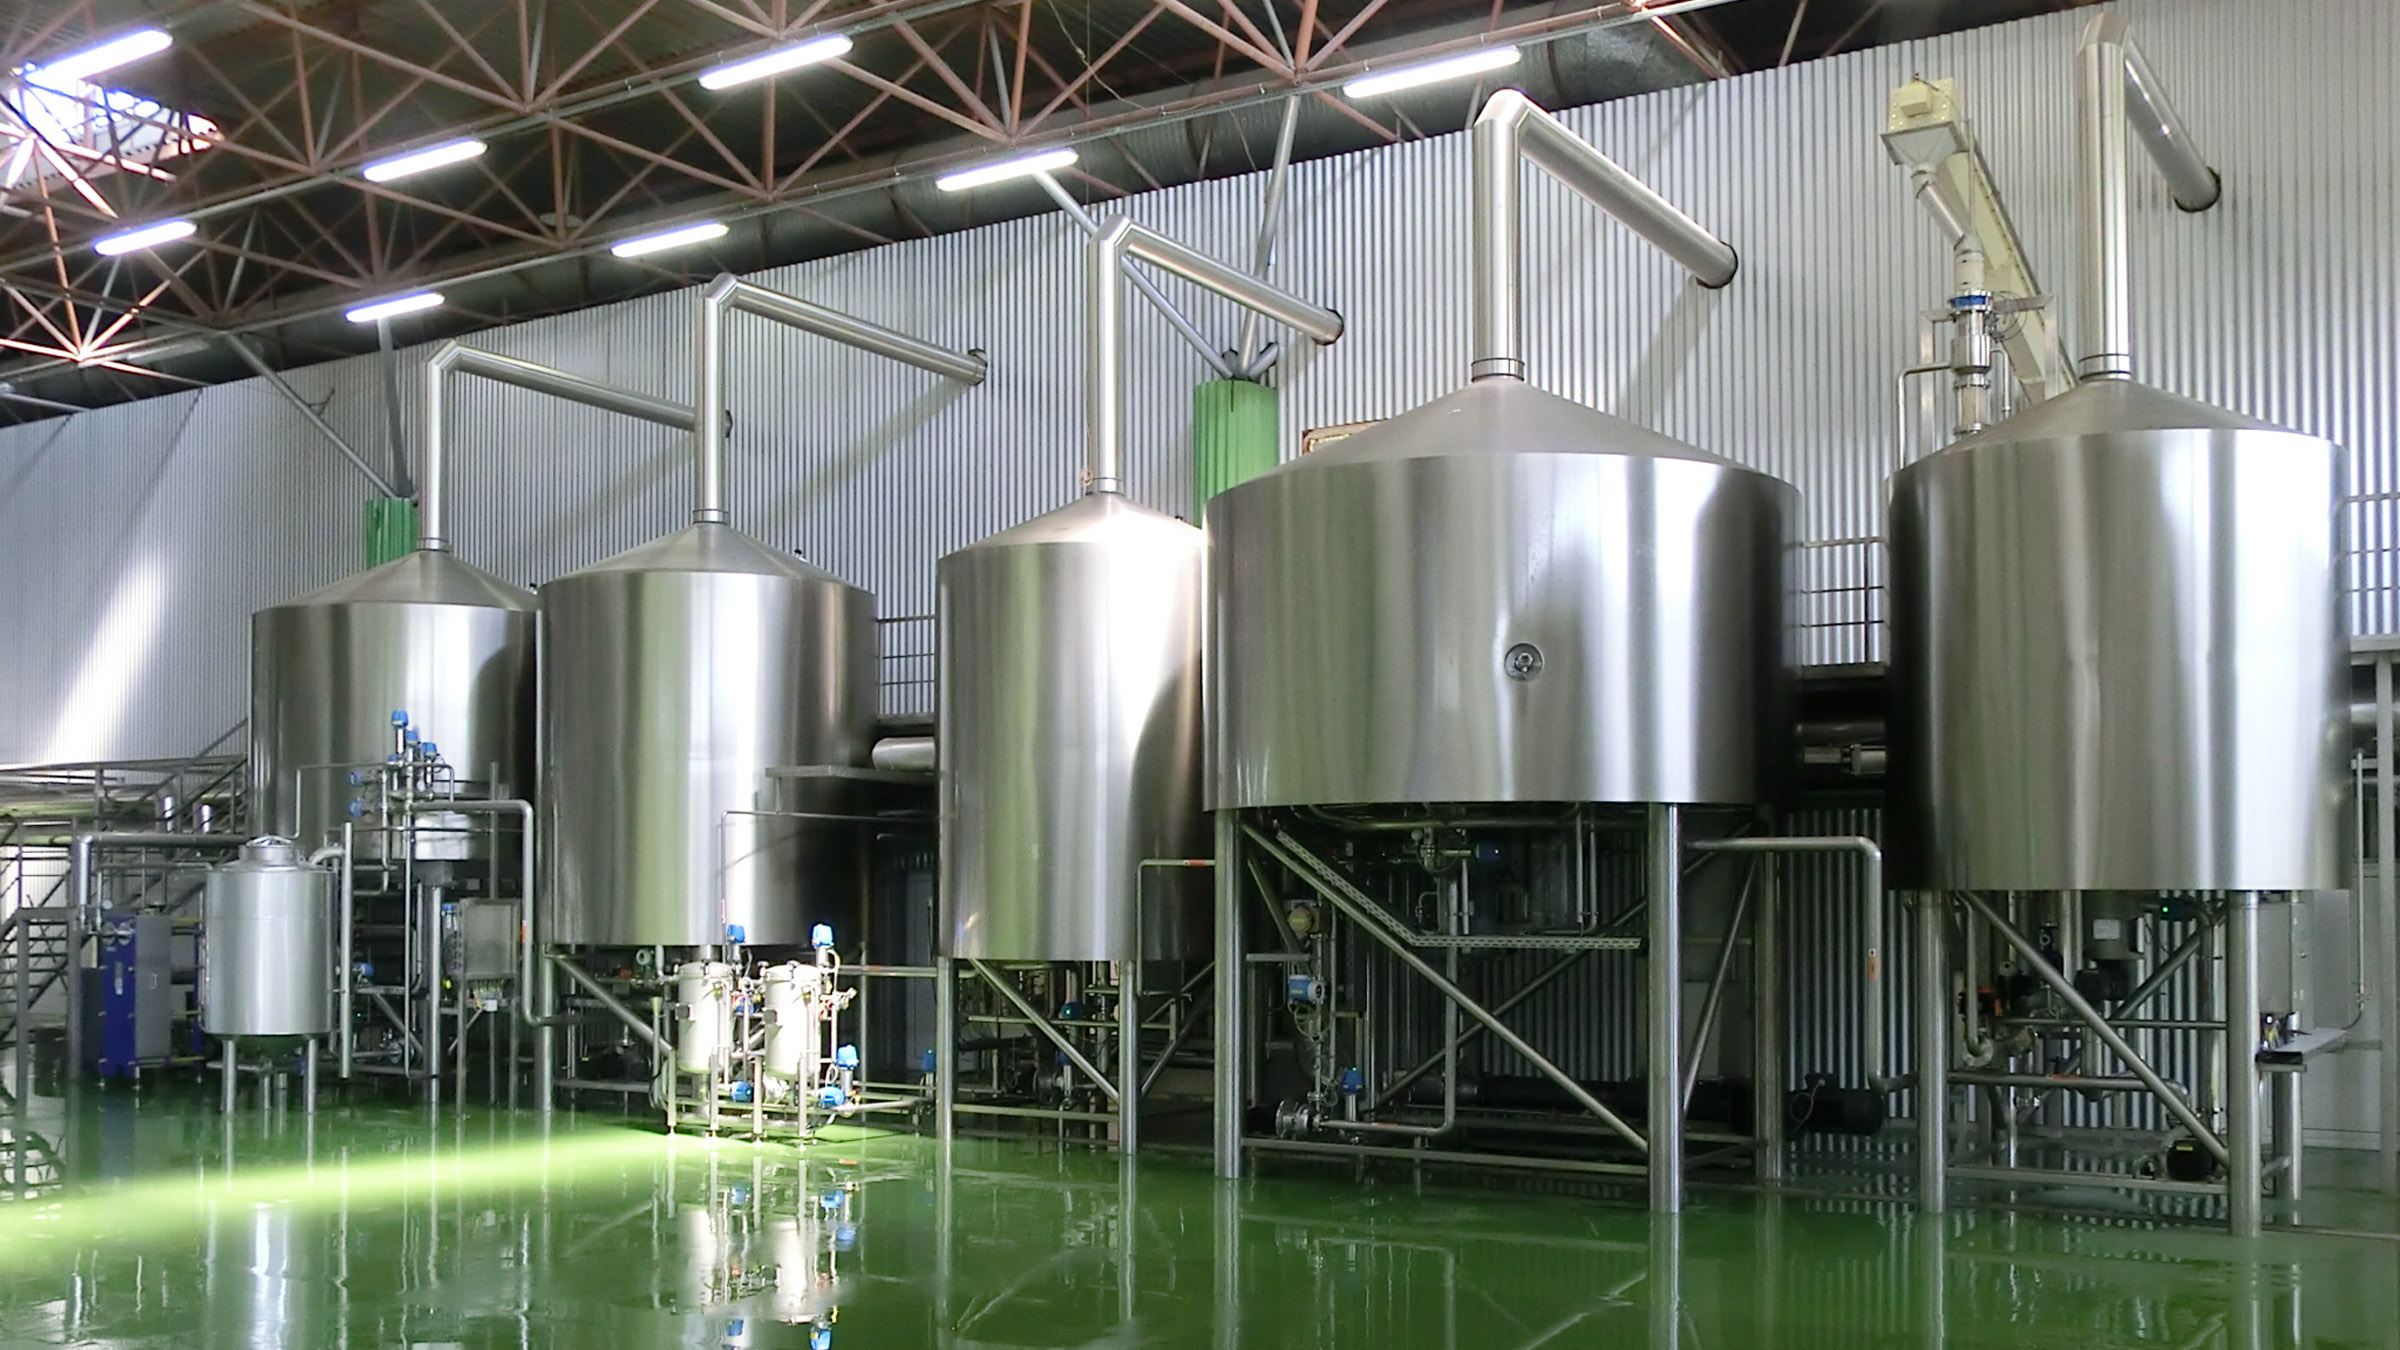 COMPACT-STAR Craft Brewhouse 5 vessel brewery